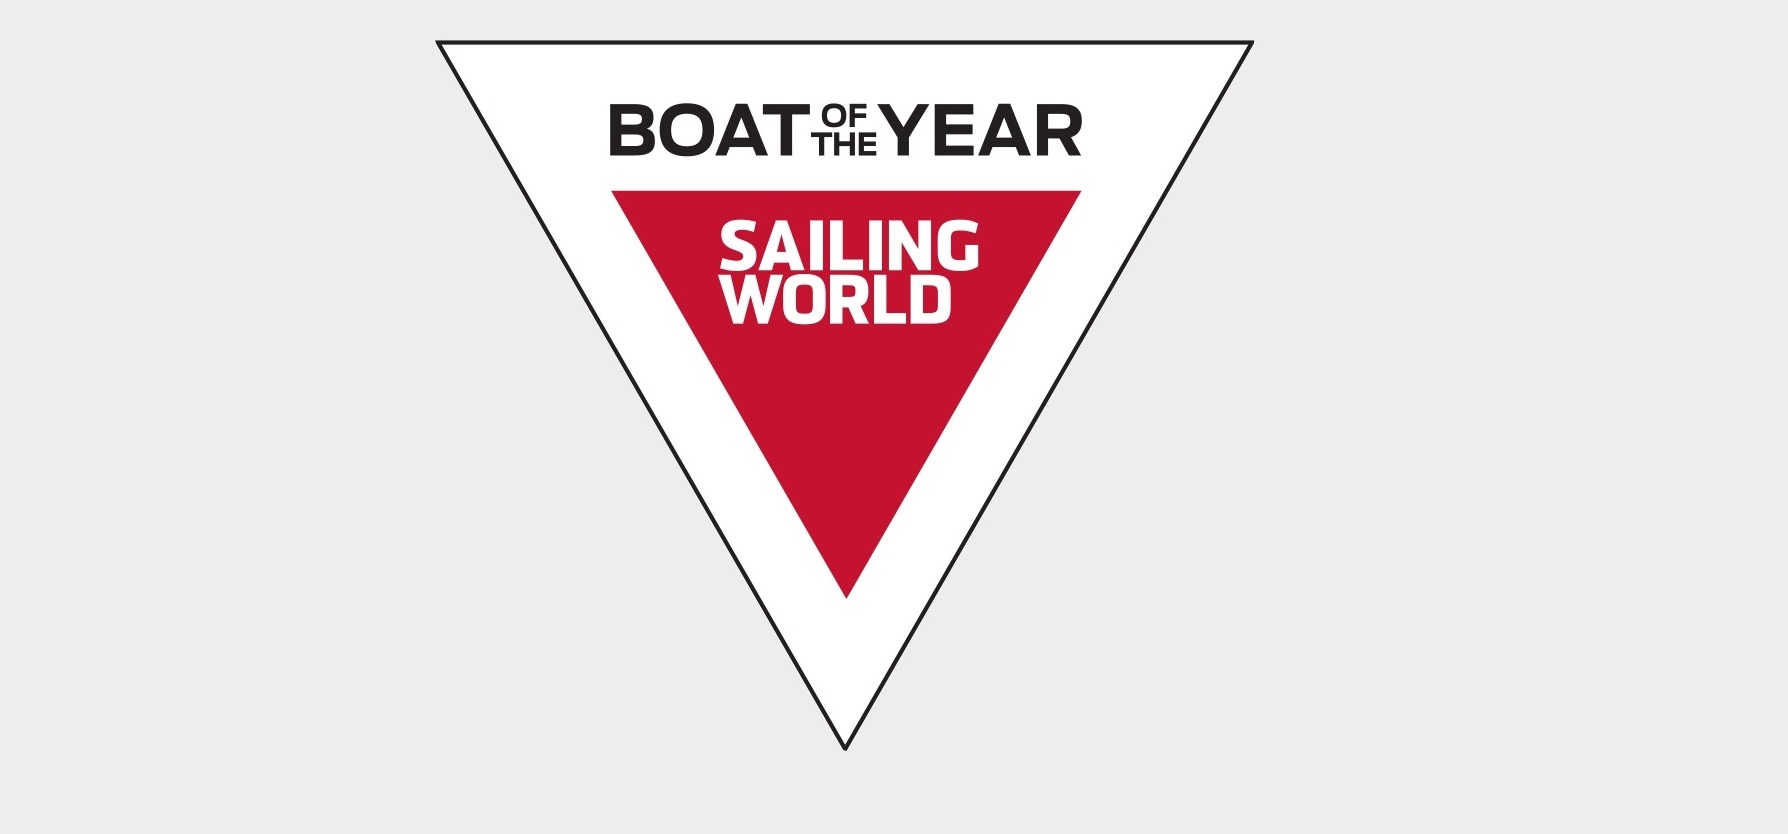 Sailing World - Boat of the Year © Boat-Specs.com